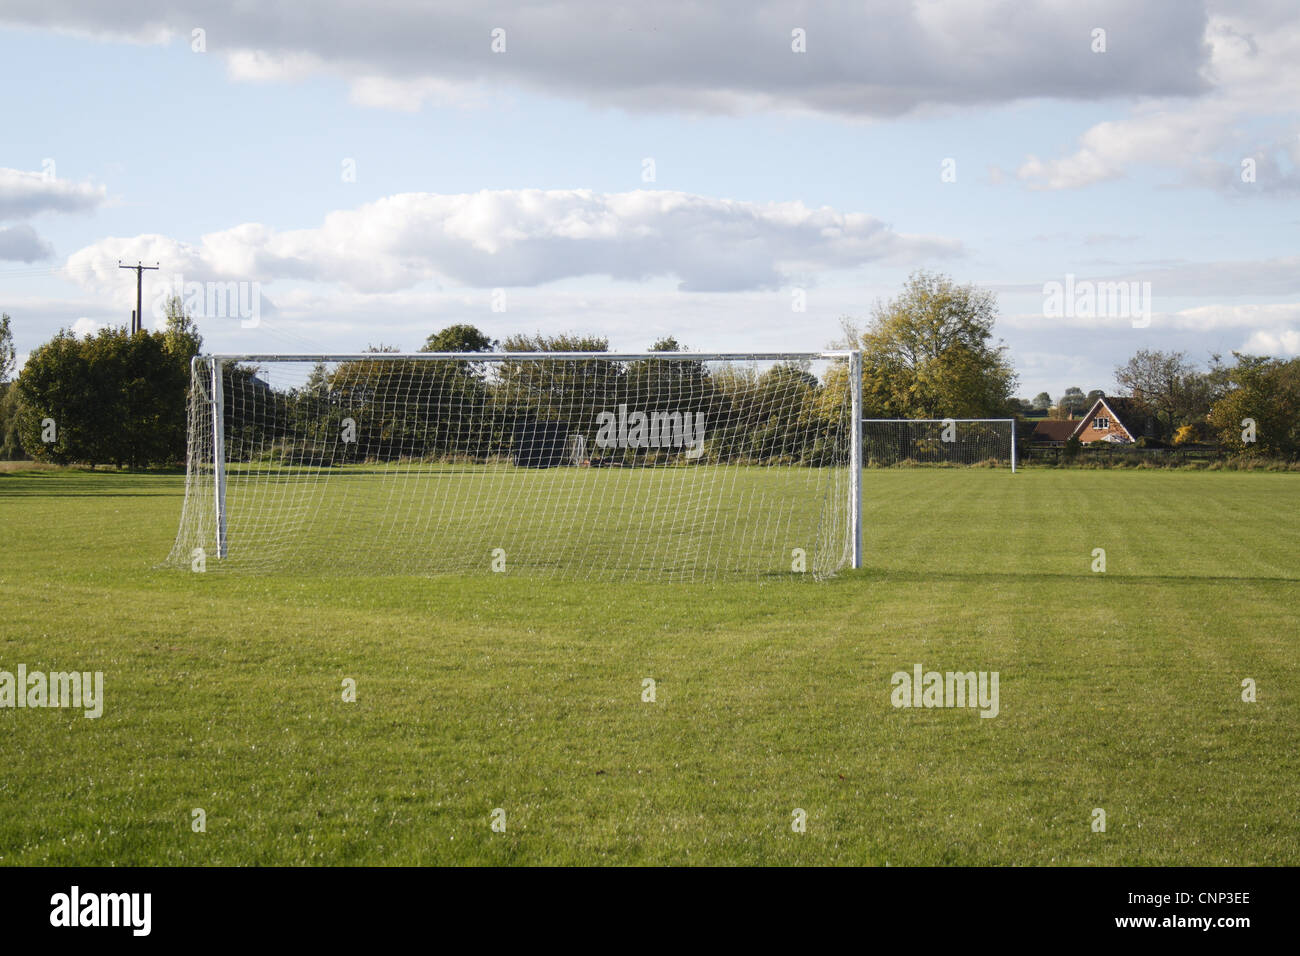 Goal posts on village football pitch, in evening sunshine, Bacton, Suffolk, England, october - Stock Image